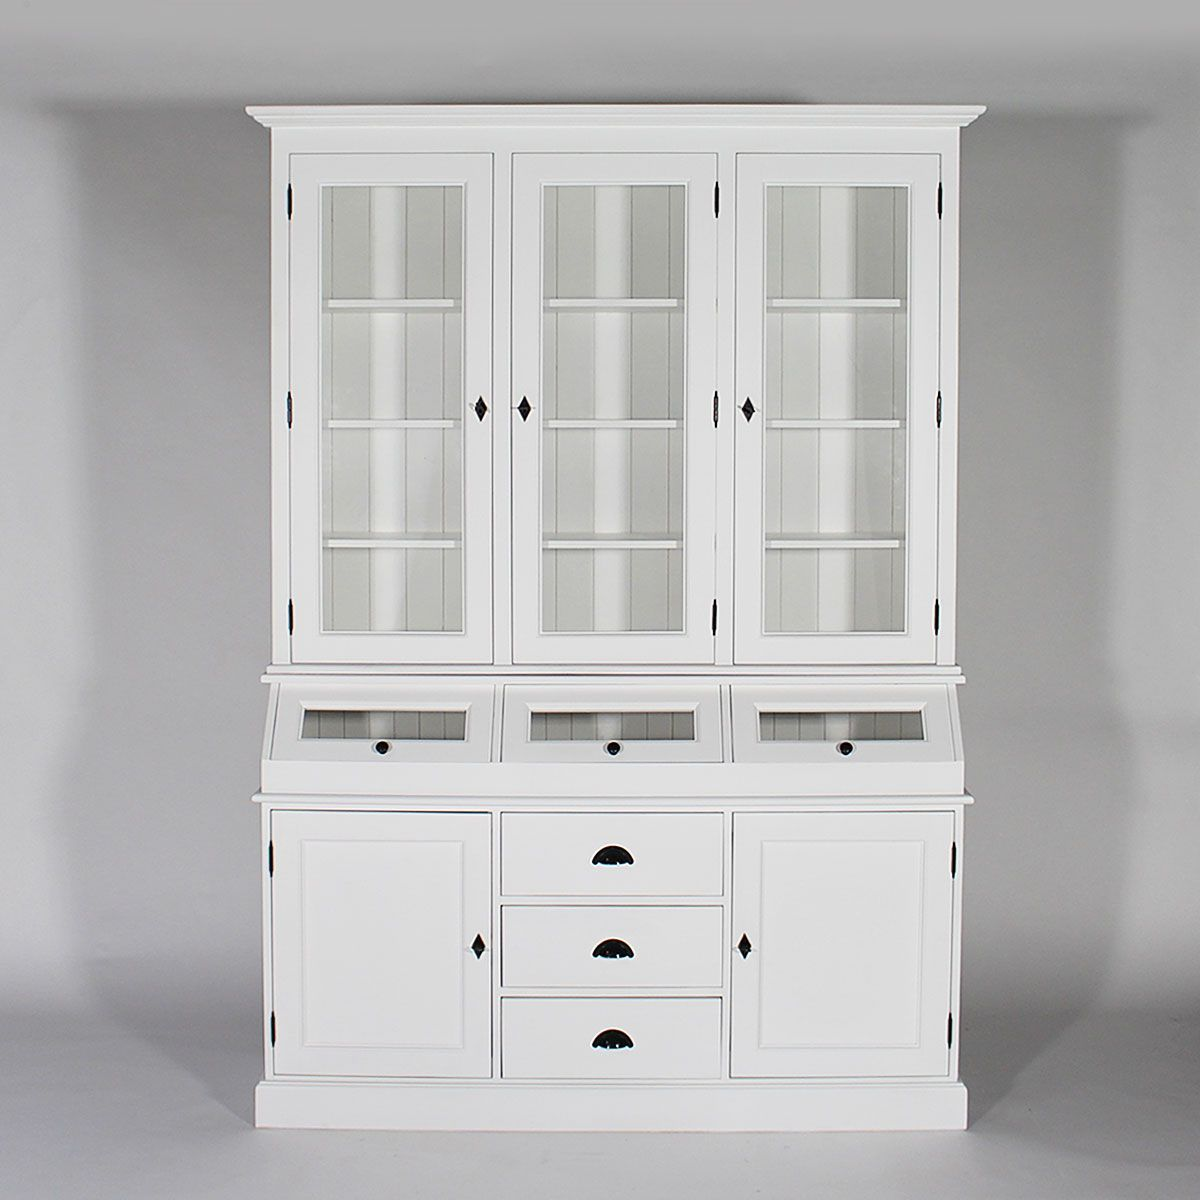 Meuble Vaisselier Deux Corps En Pin Massif Blanc Made In Meubles La Redoute China Cabinet Furniture Home